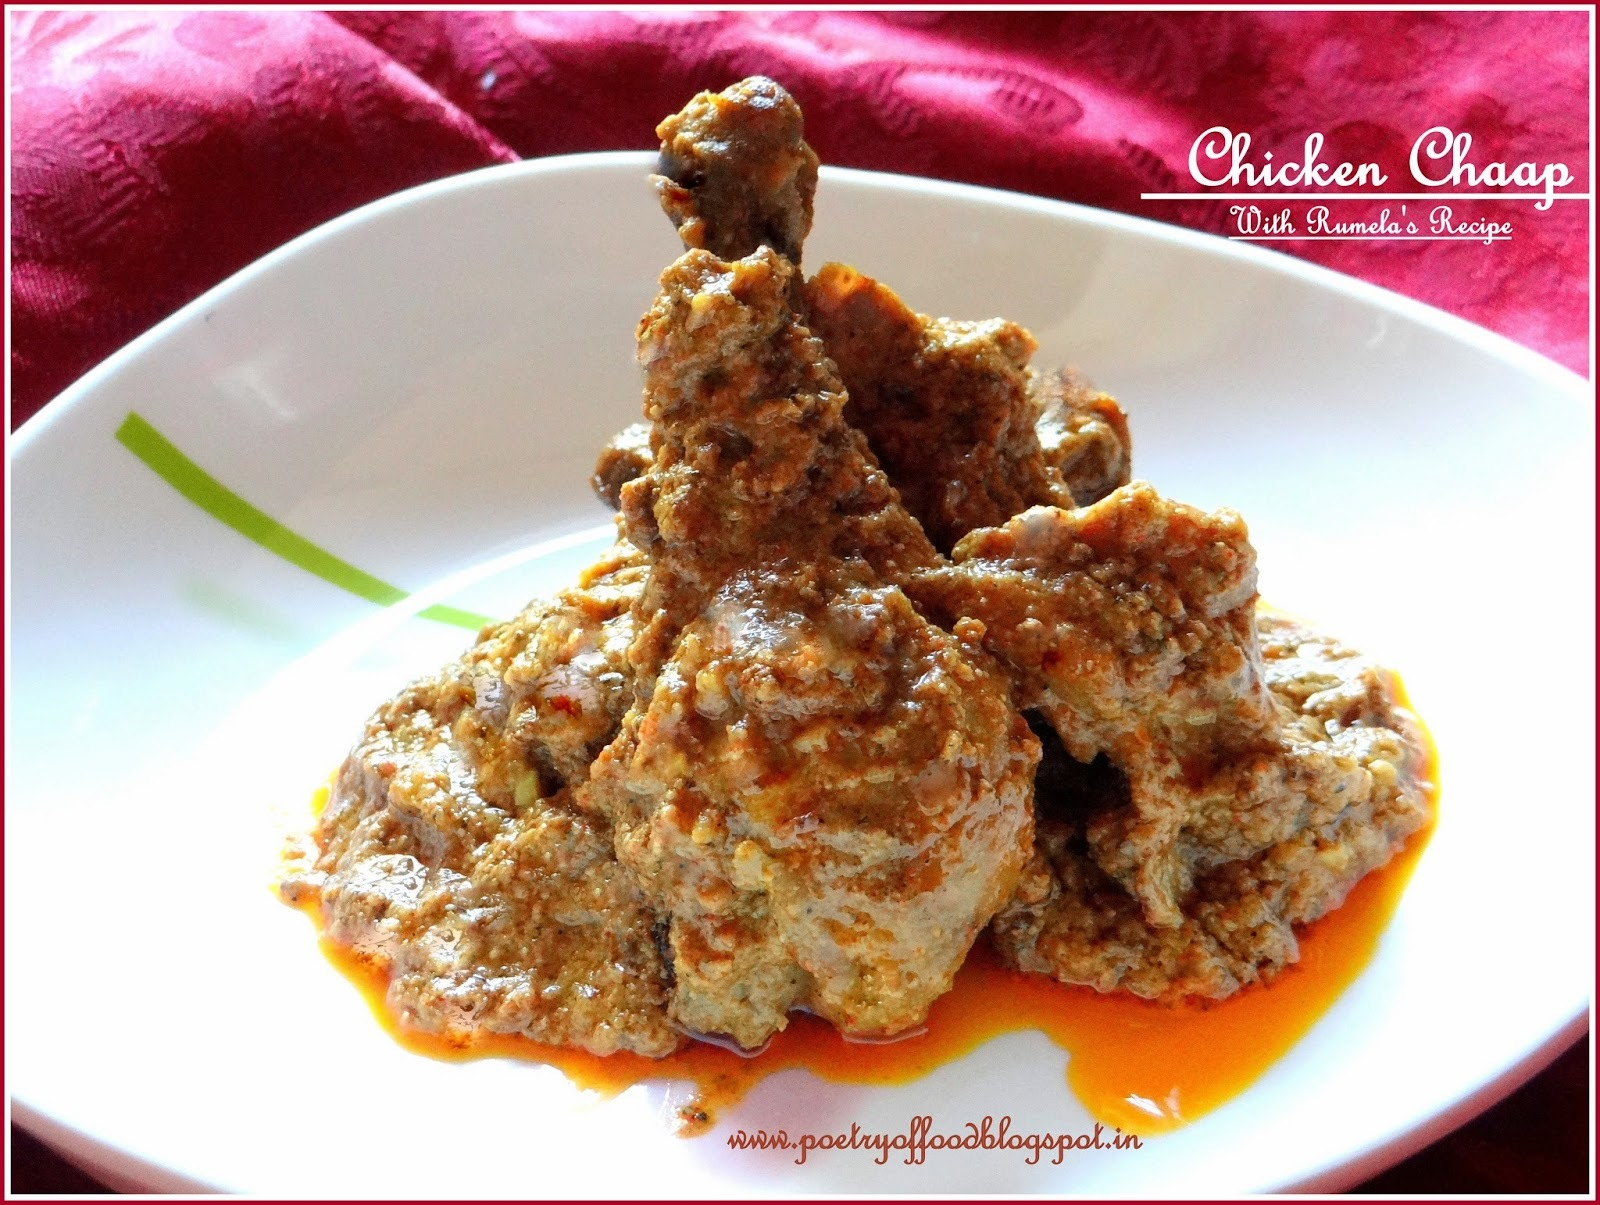 of chicken chaap by sanjeev kapoor